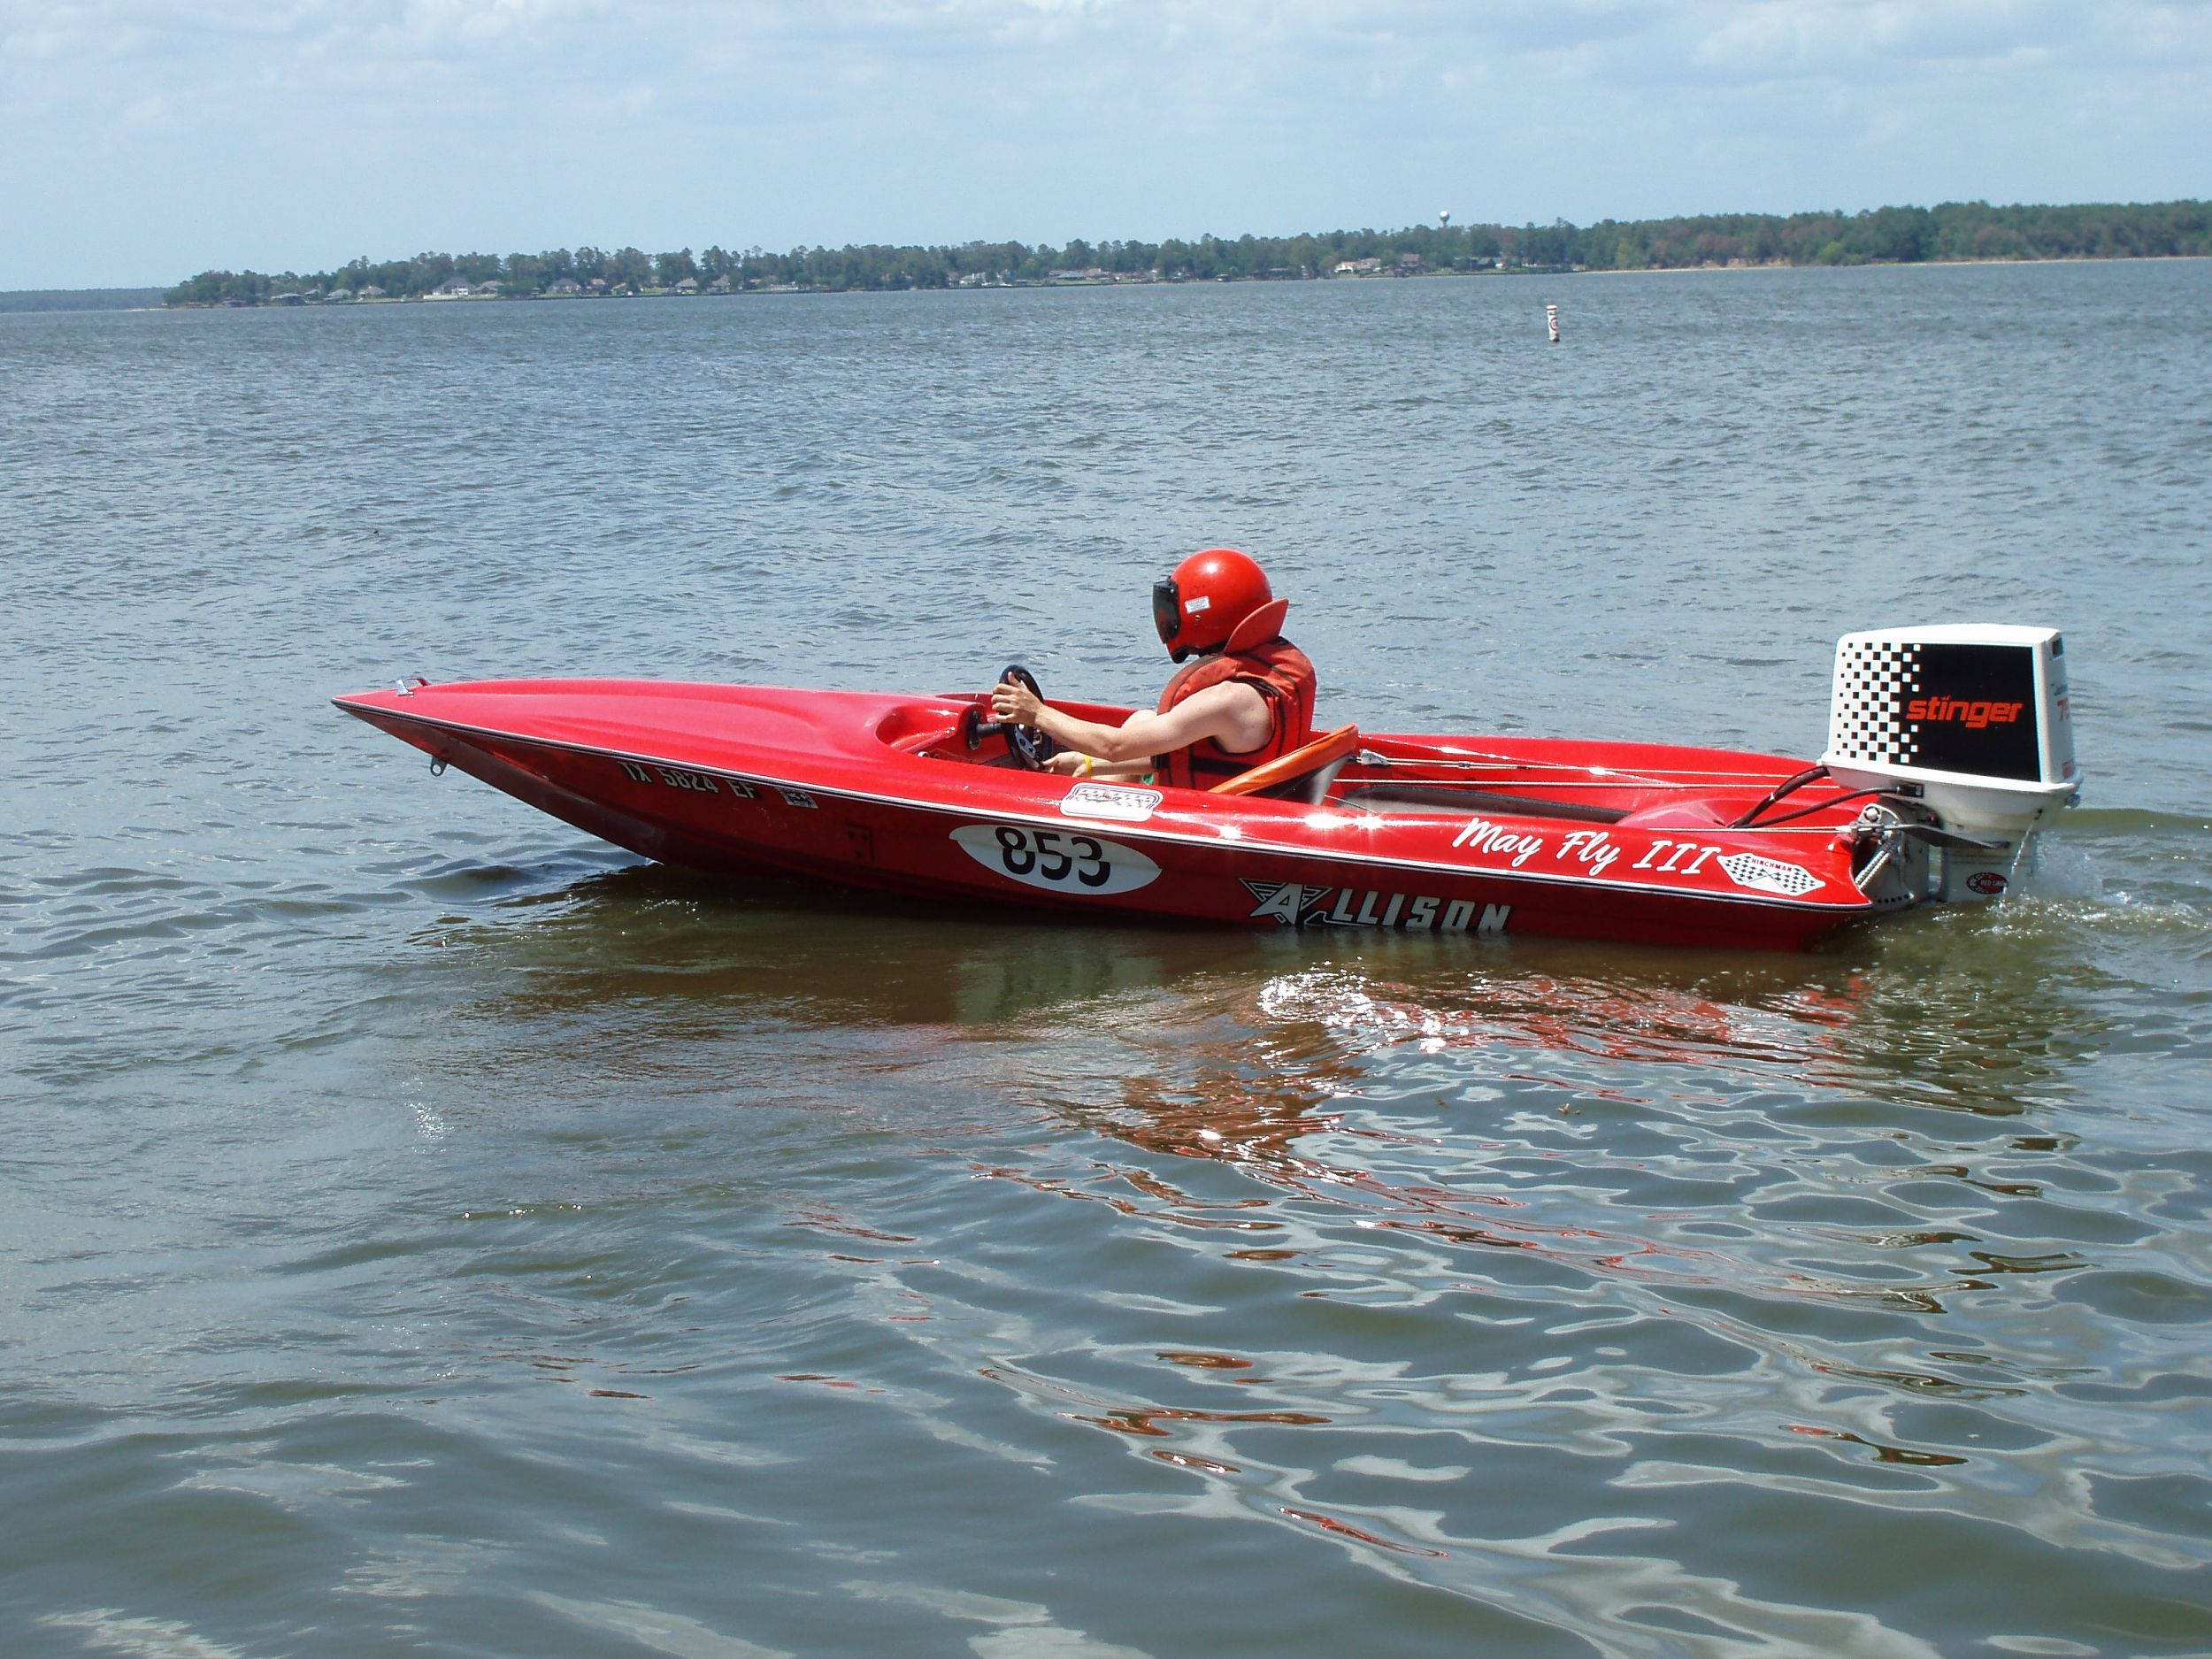 Red 1970s Era Race Boat And Motor